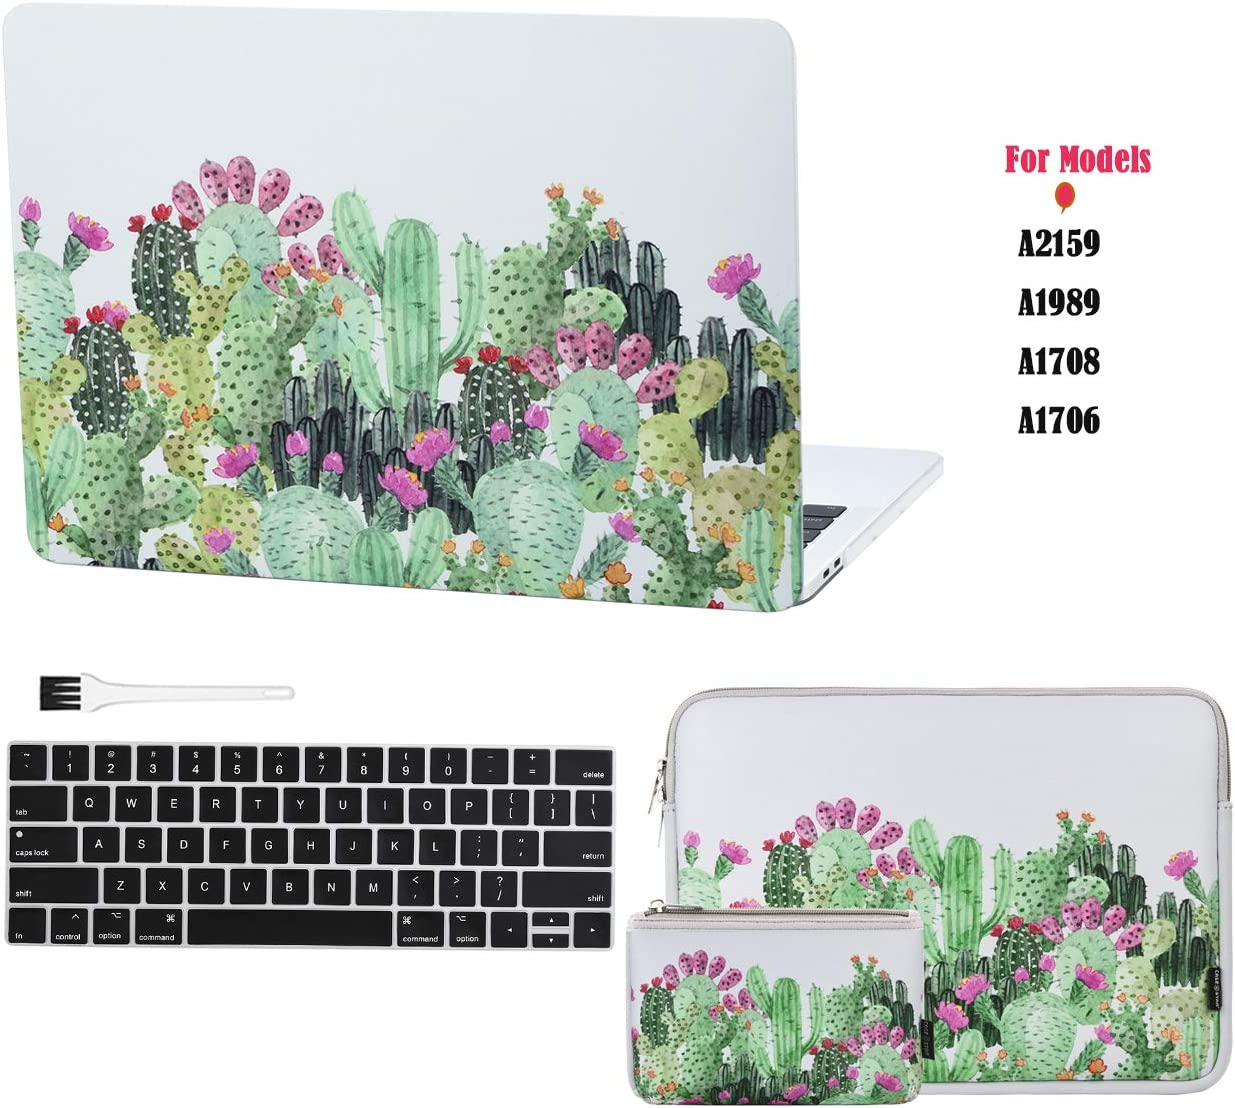 Case Star Laptop case for New MacBook Pro13 Inch New Models A2159 A1989 A1708 A1706+13 Inch Neoprene Laptop Sleeve+Electronics Accessories Pouch+Silicone Keyboard Cover+Brush(Cactus 5pcs Set)